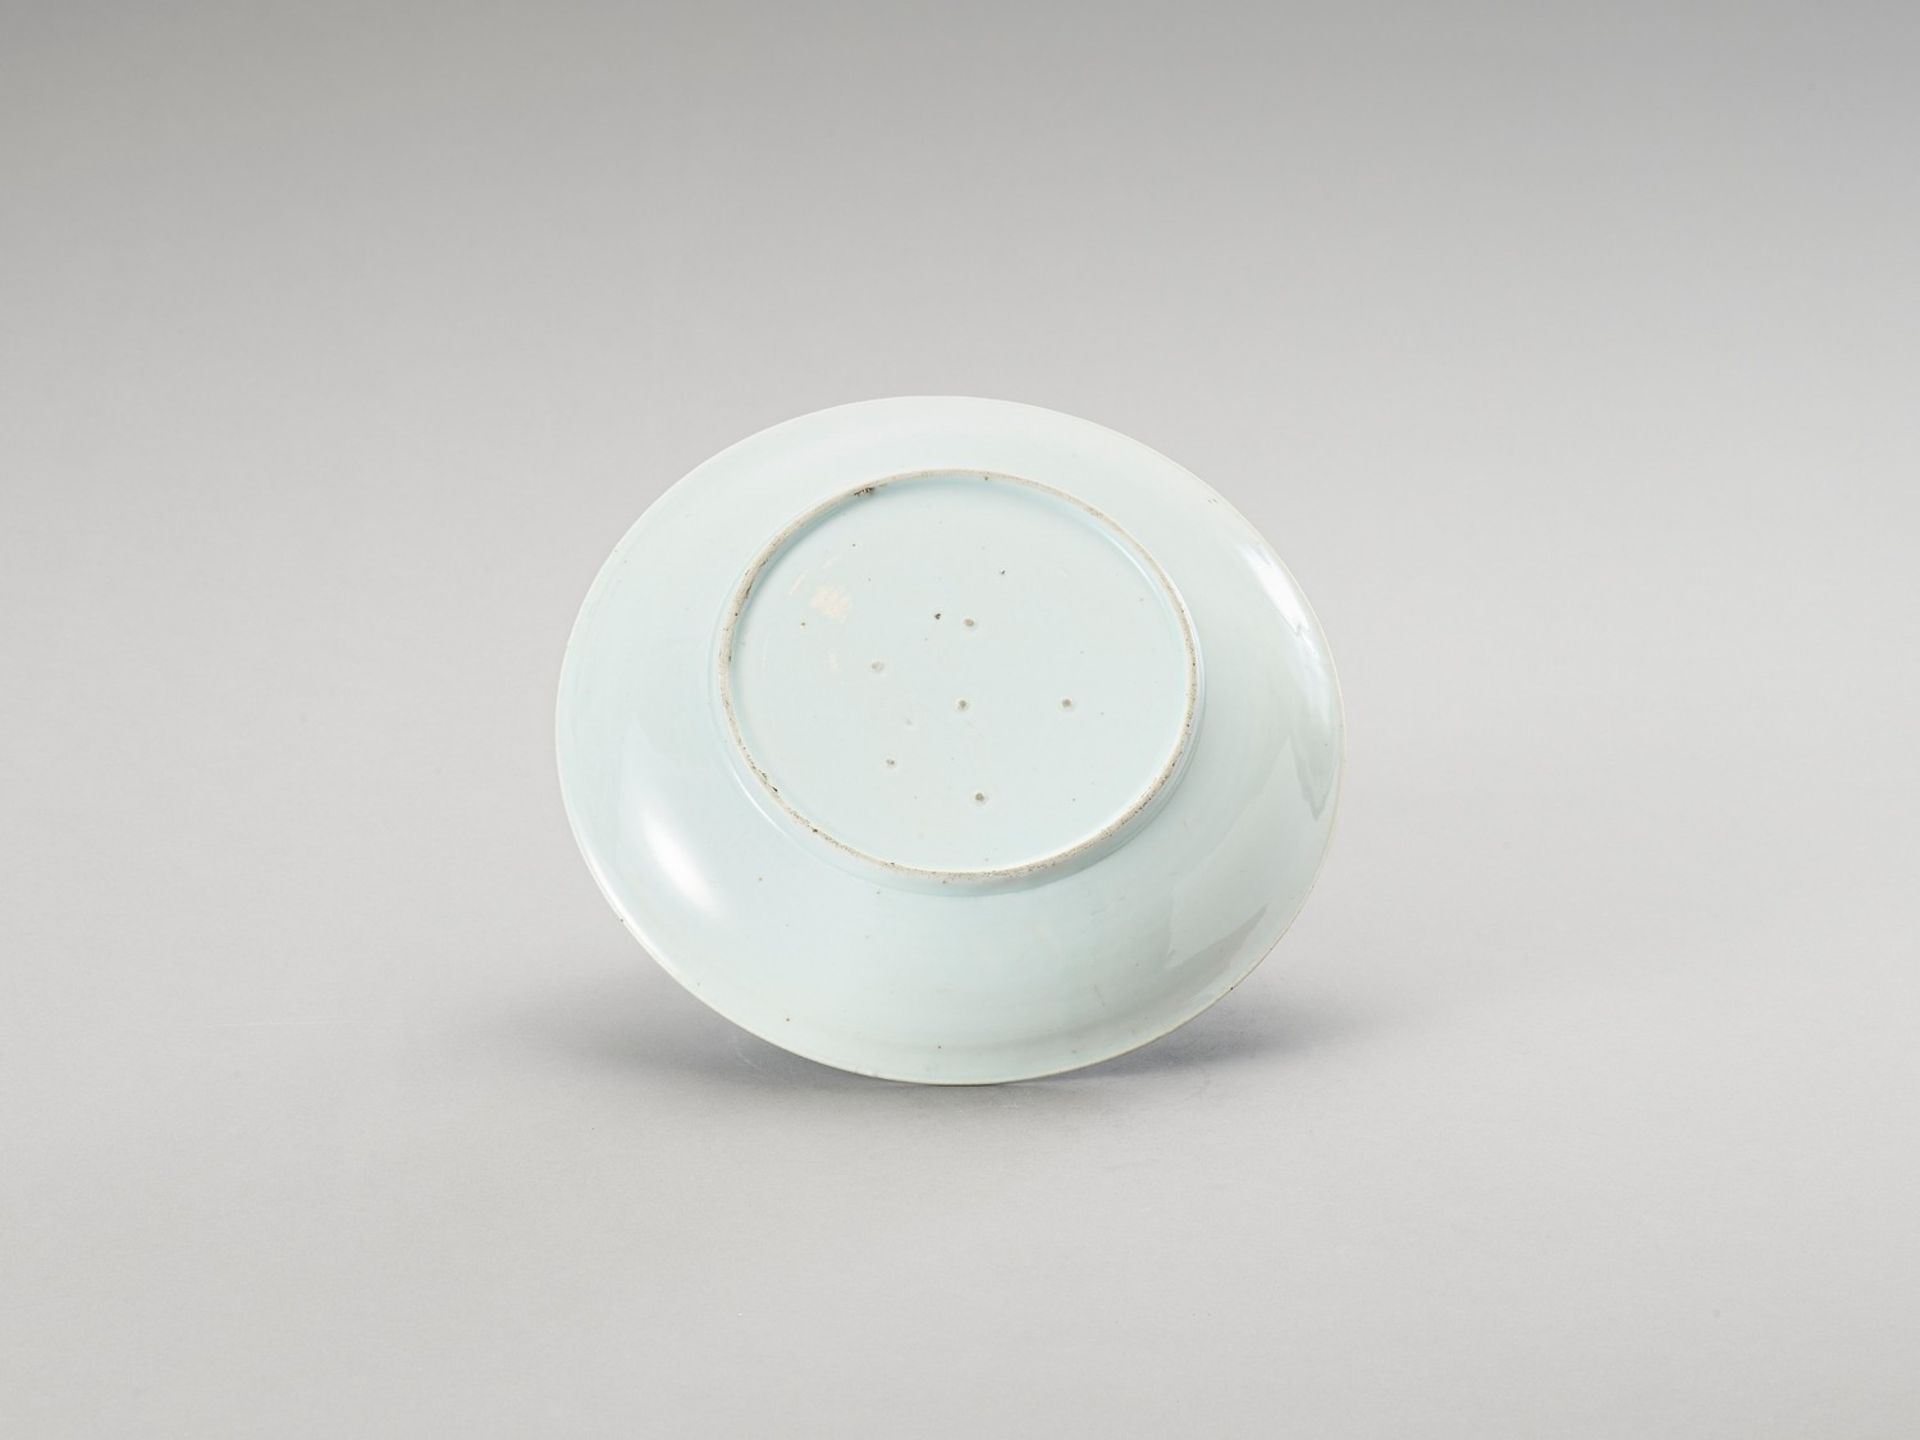 A BLUE AND WHITE 'FLORAL' PORCELAIN DISH - Image 3 of 4